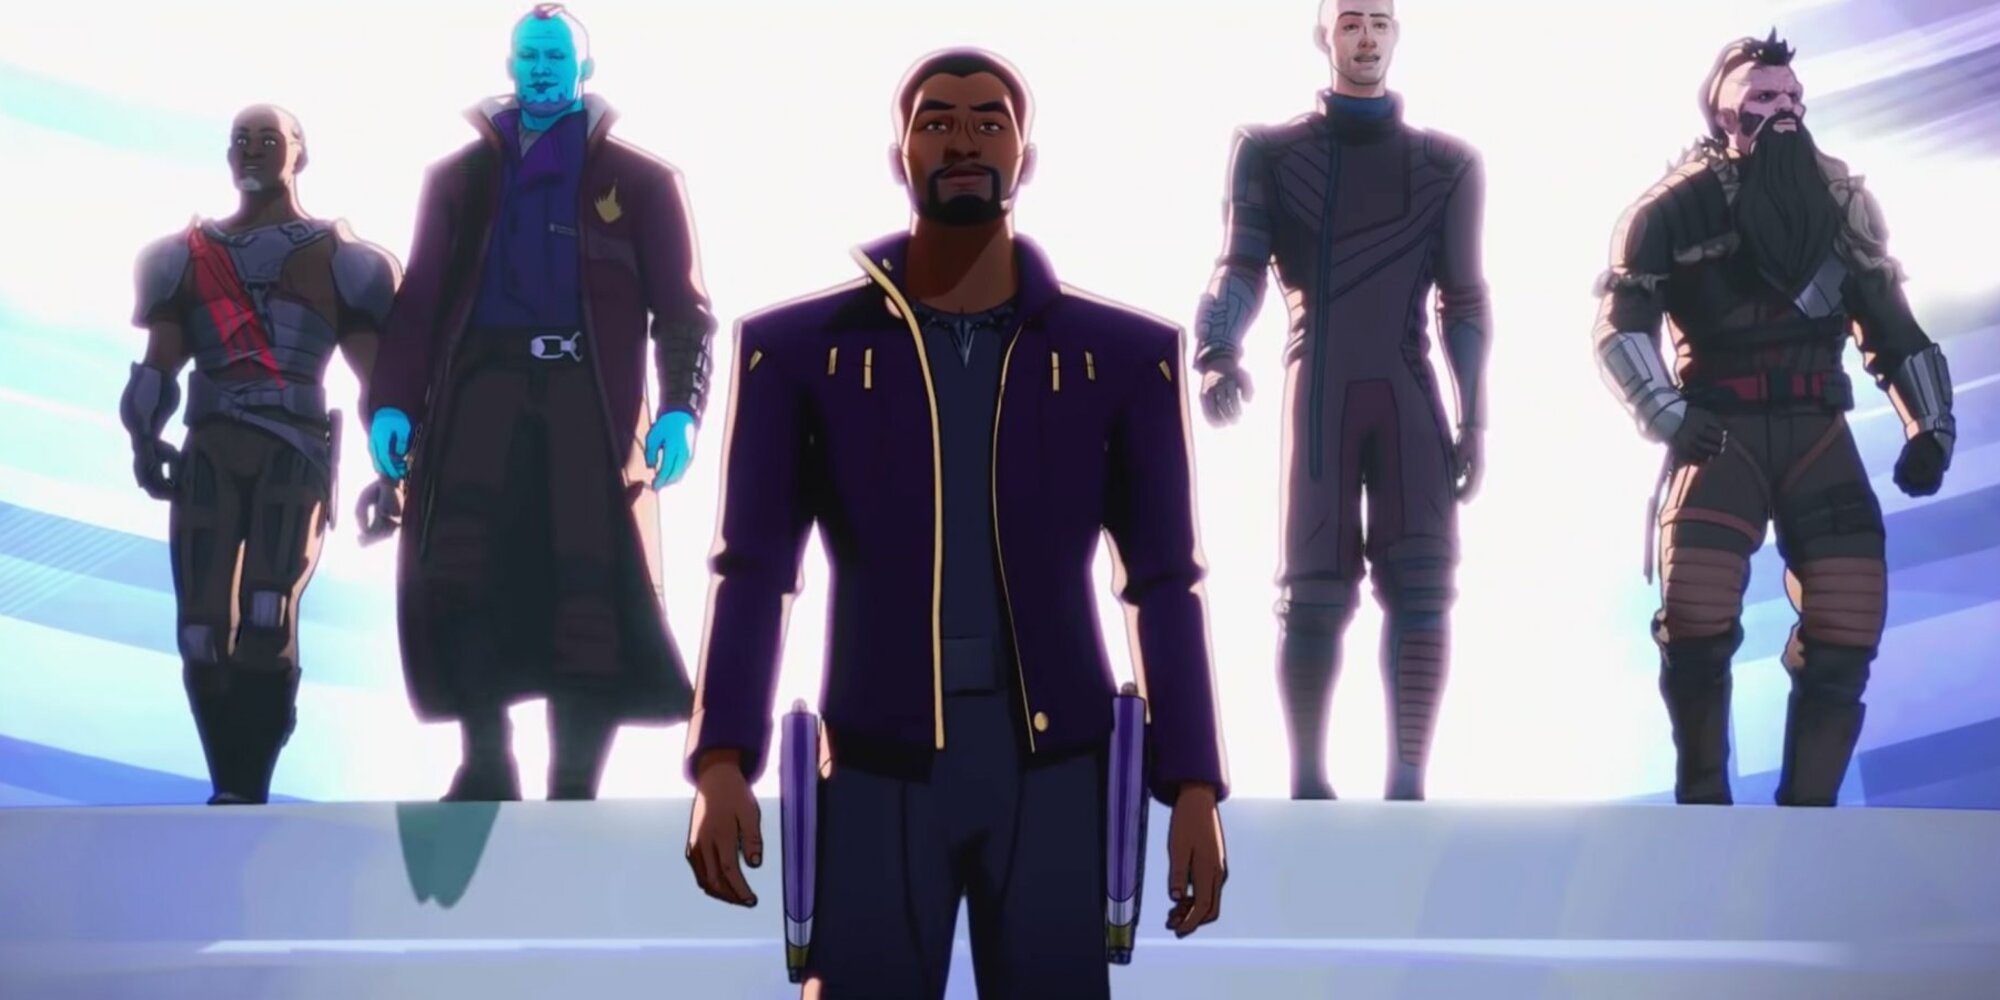 Hasbro unveils new Marvel's 'What If…?' figurines, including Chadwick Boseman's T'Challa Star-Lord